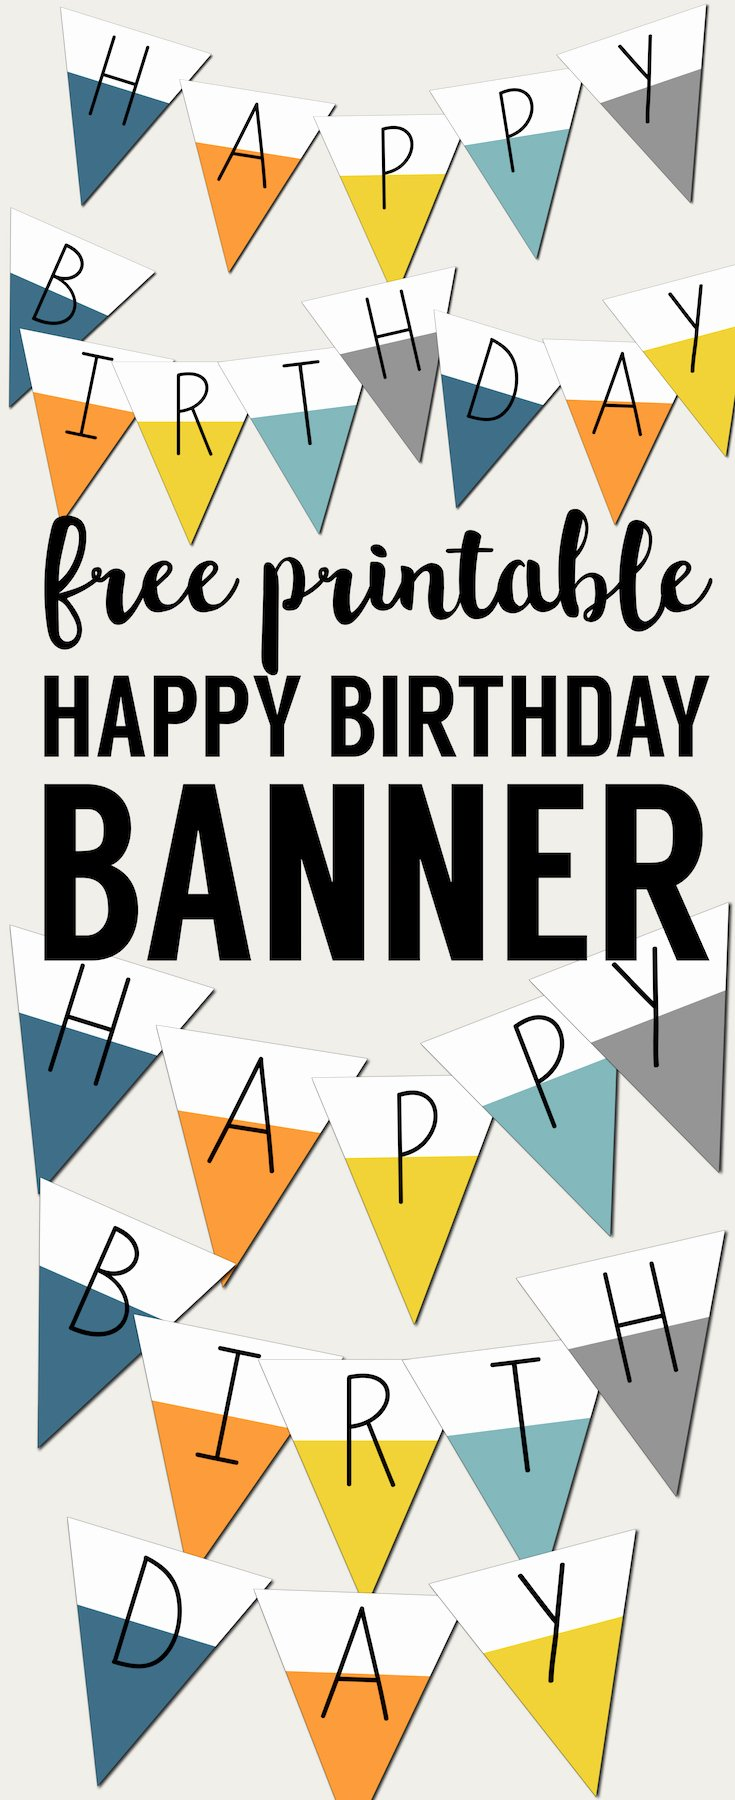 Printable Happy Birthday Banners Unique Free Printable Happy Birthday Banner Paper Trail Design